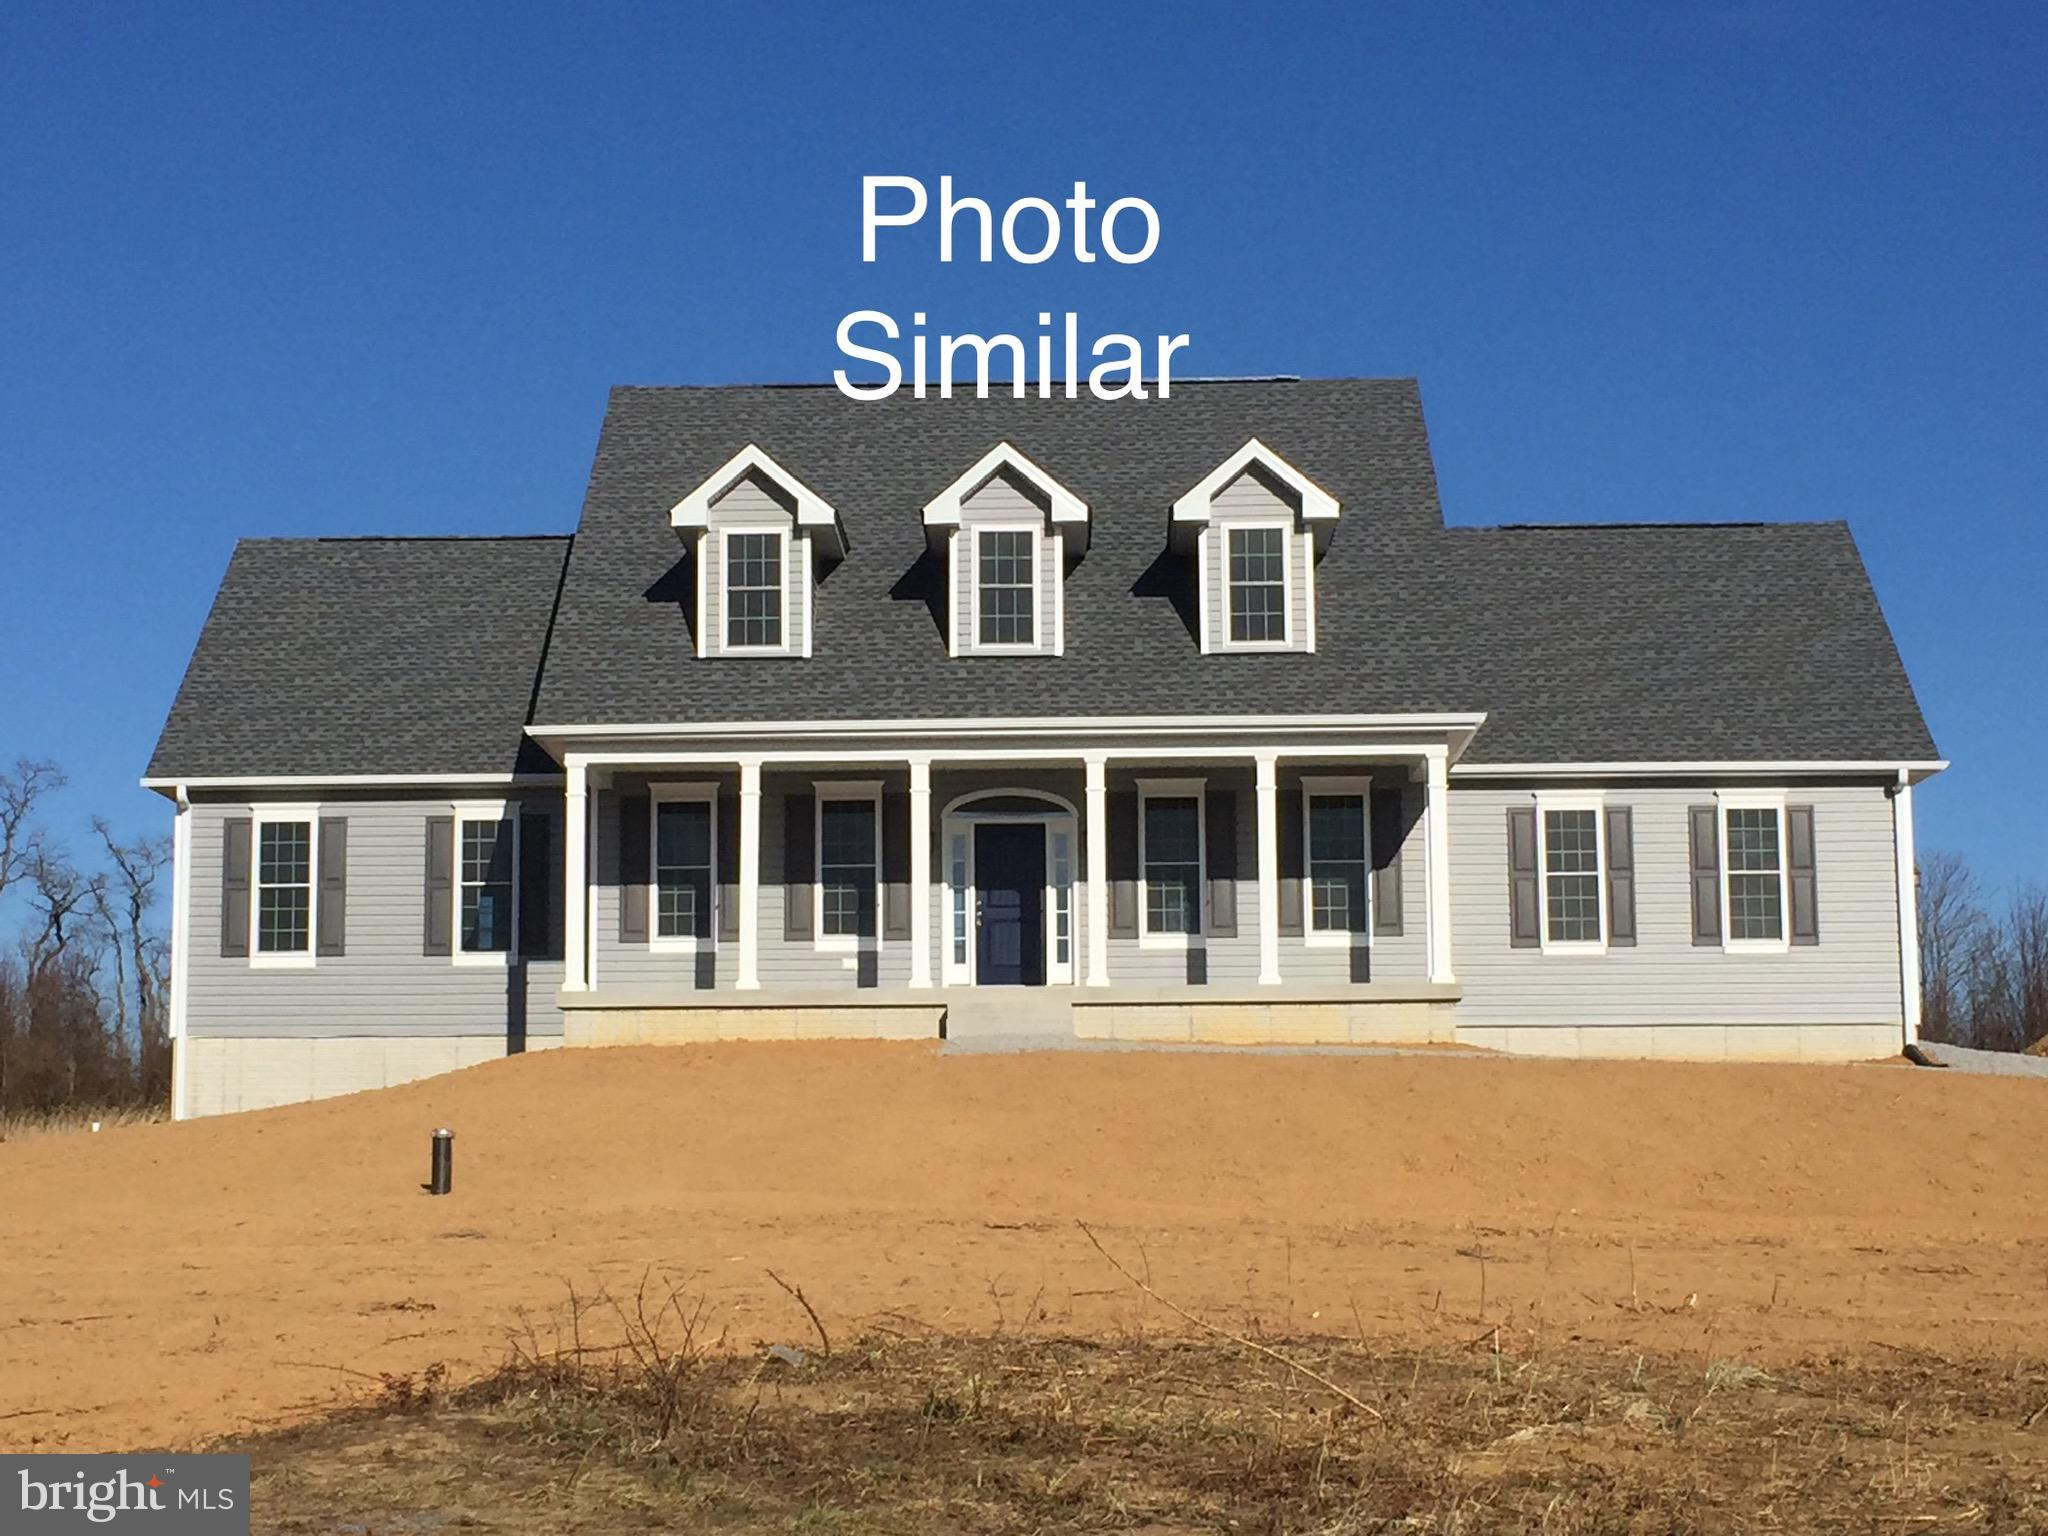 Lot 6A LAKEFIELD RD, ROUND HILL, VA 20141